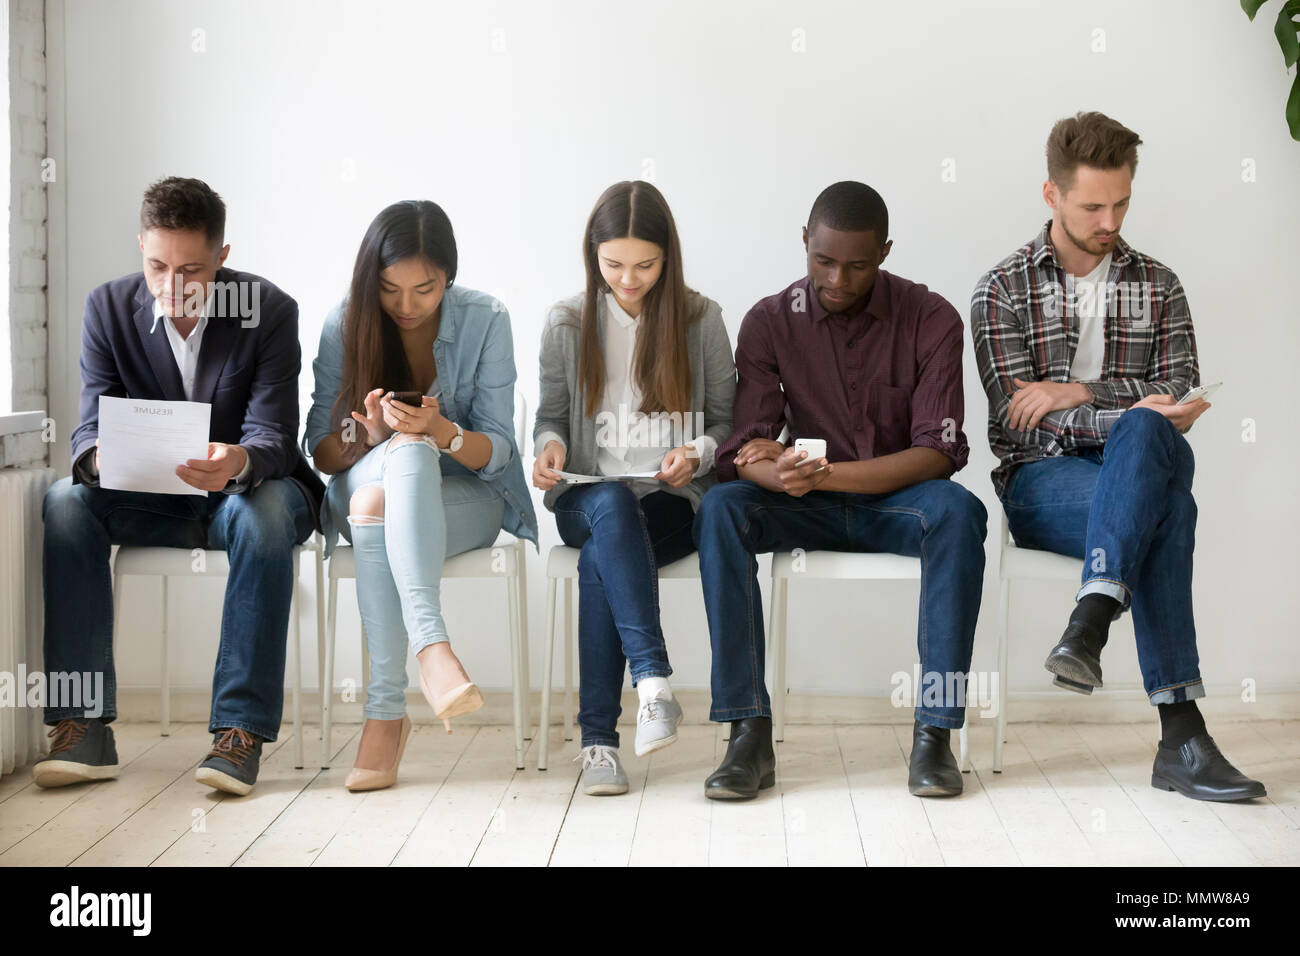 Multi-ethnic millennial people wait in queue preparing for job i - Stock Image